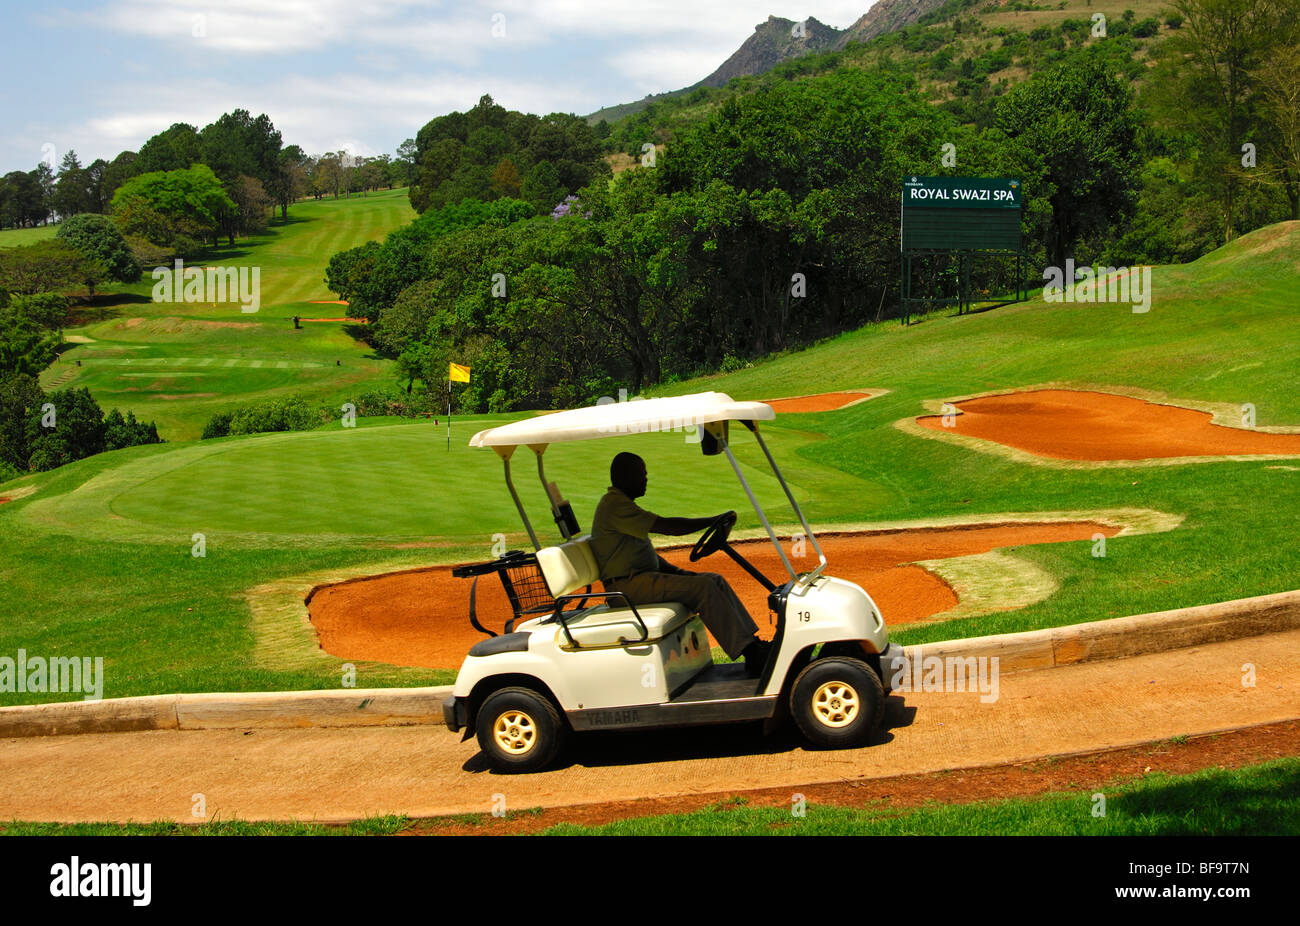 Electric golf cart on the 18-hole golf course of the Royal Swazi Spa Hotel Resort, Ezulwini, Swaziland - Stock Image